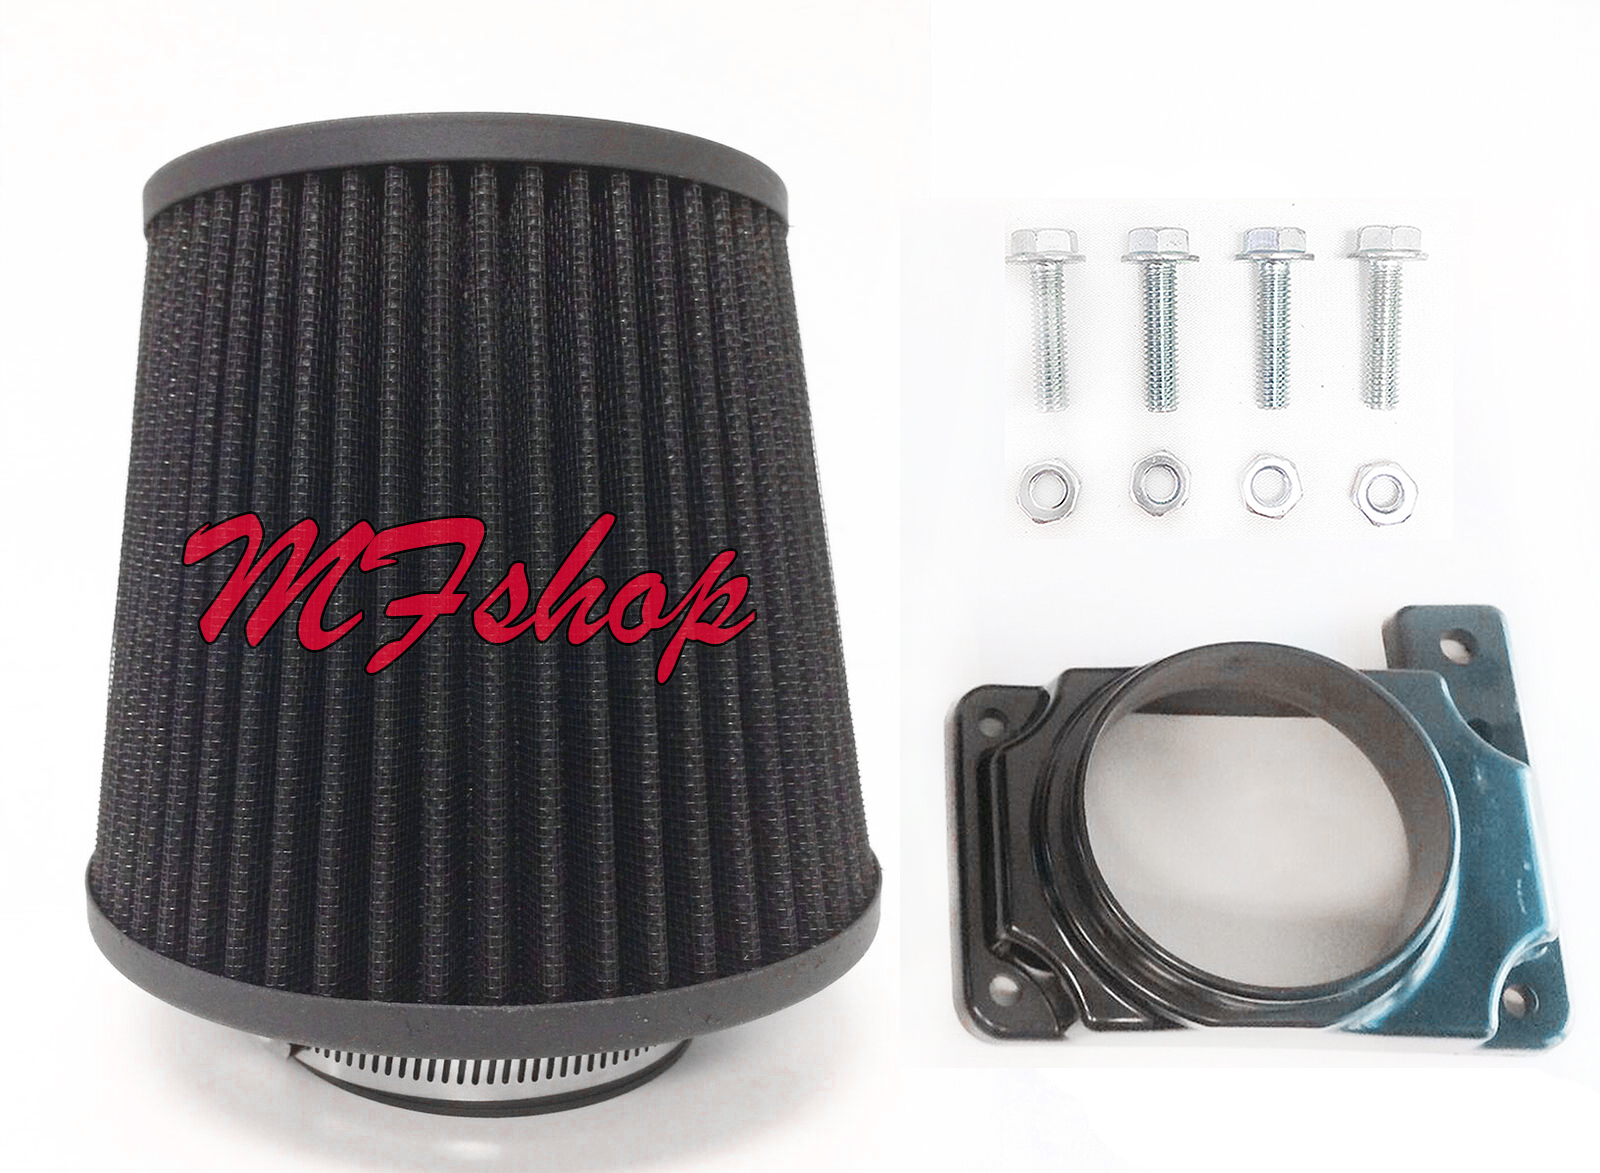 BLUE Filter For 96-99 Taurus SHO 3.4L V8 Mass Air Flow Sensor Intake Adapter